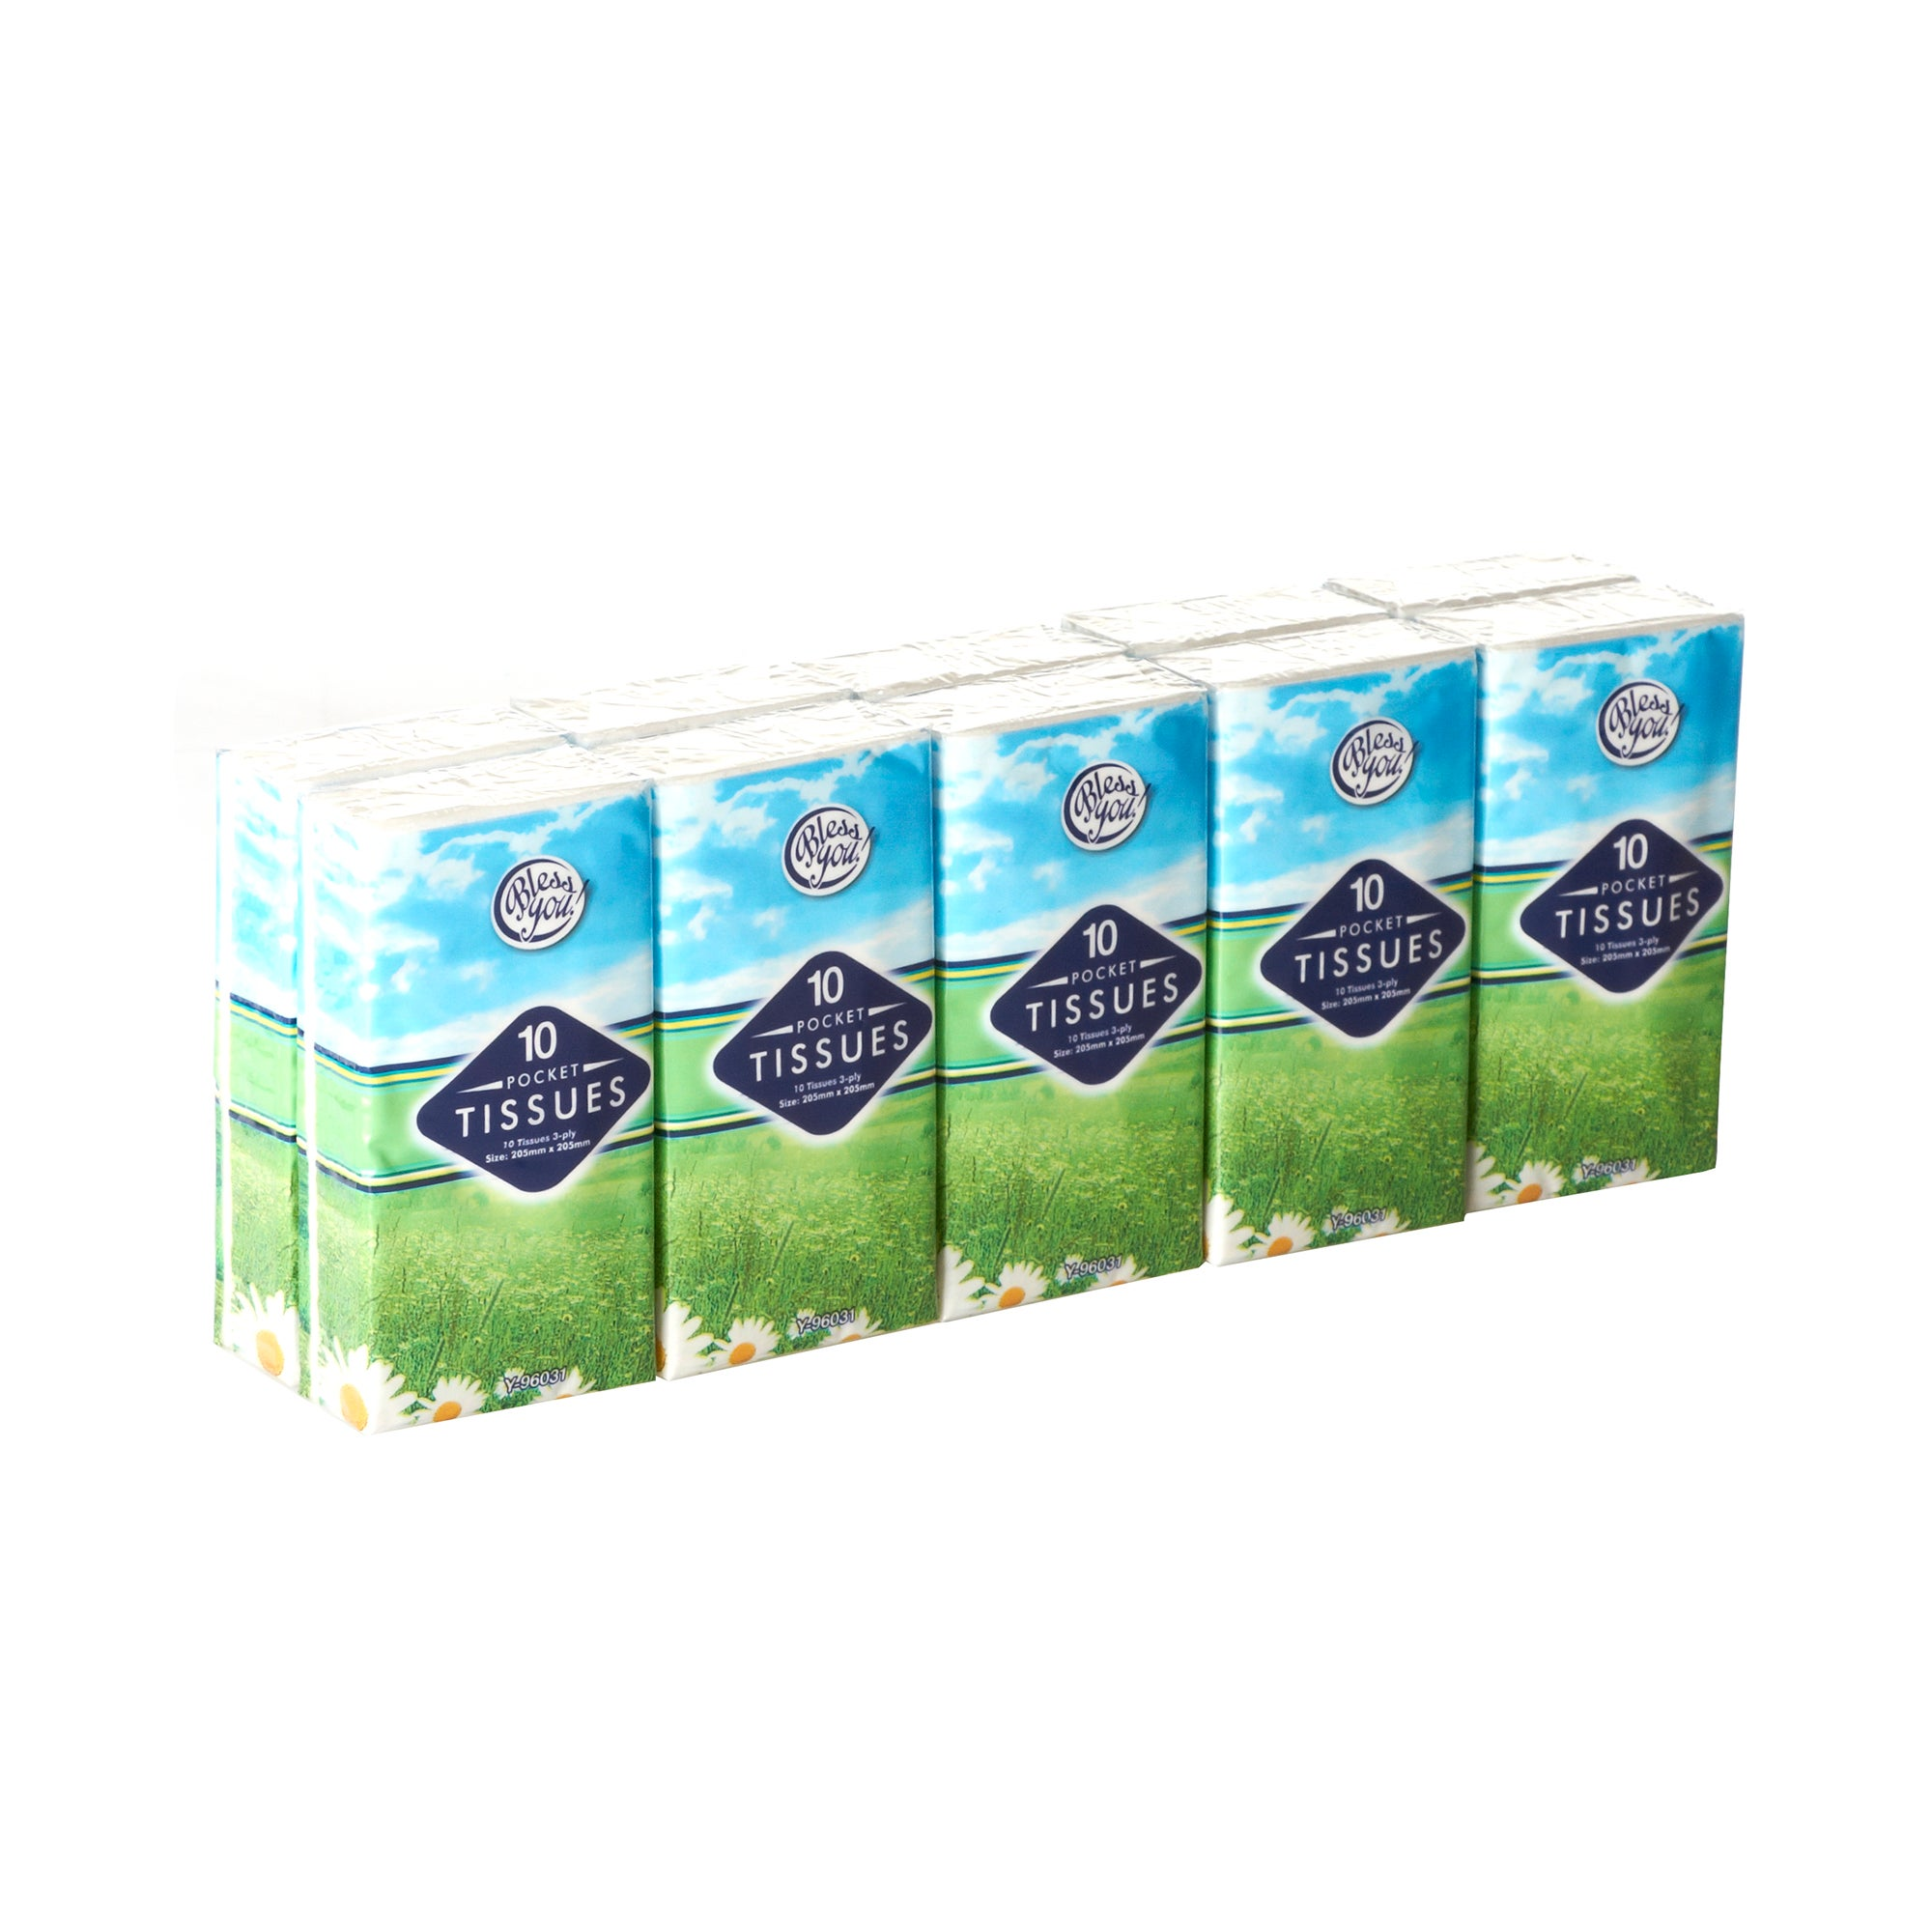 Pack of 10 Pocket Tissues